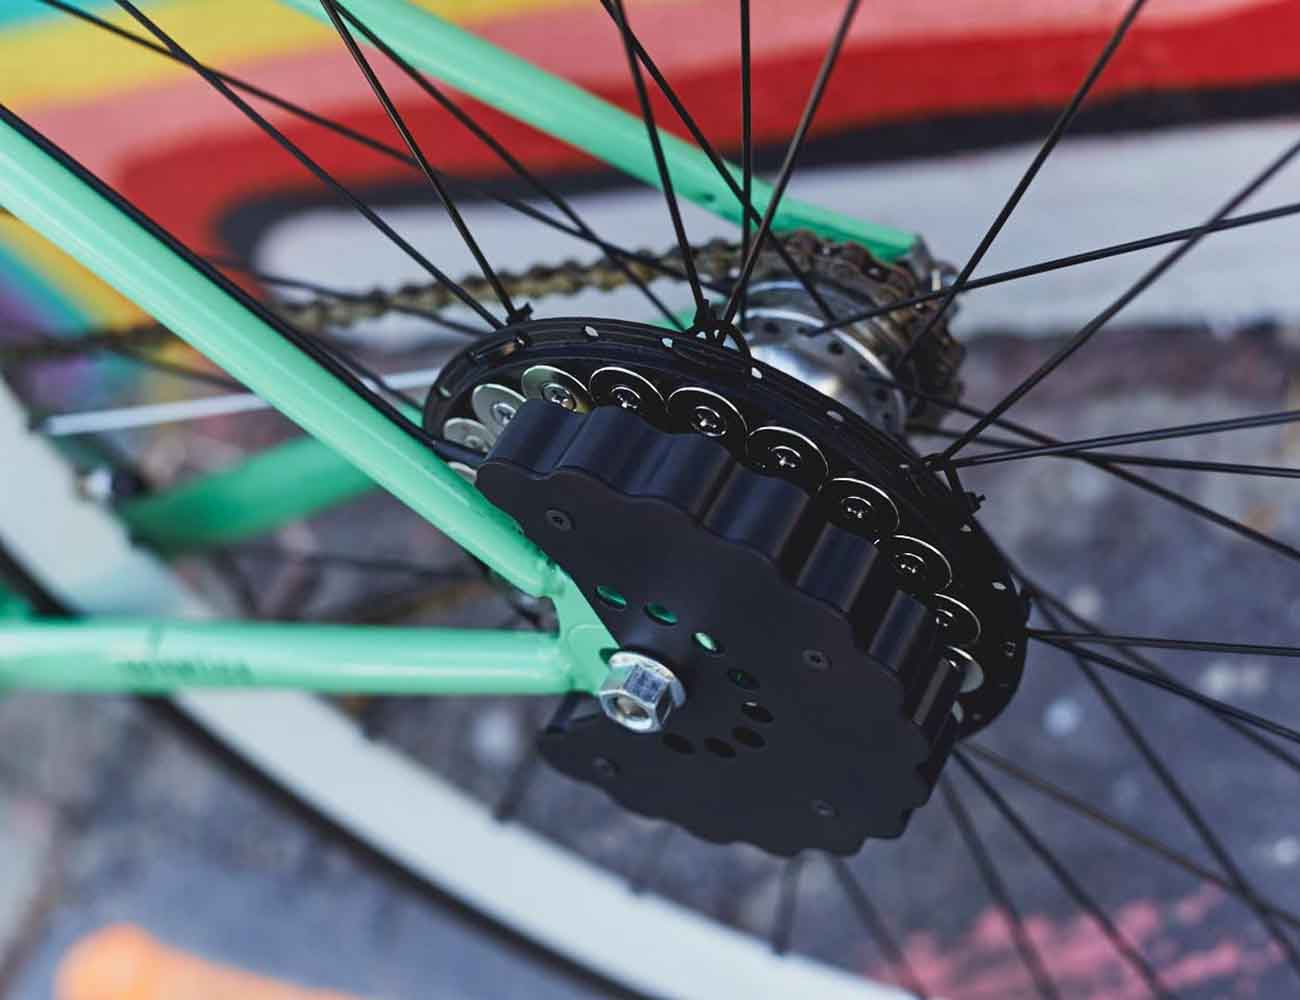 The CydeKick – Complete Bicycle-Powered USB Charger System